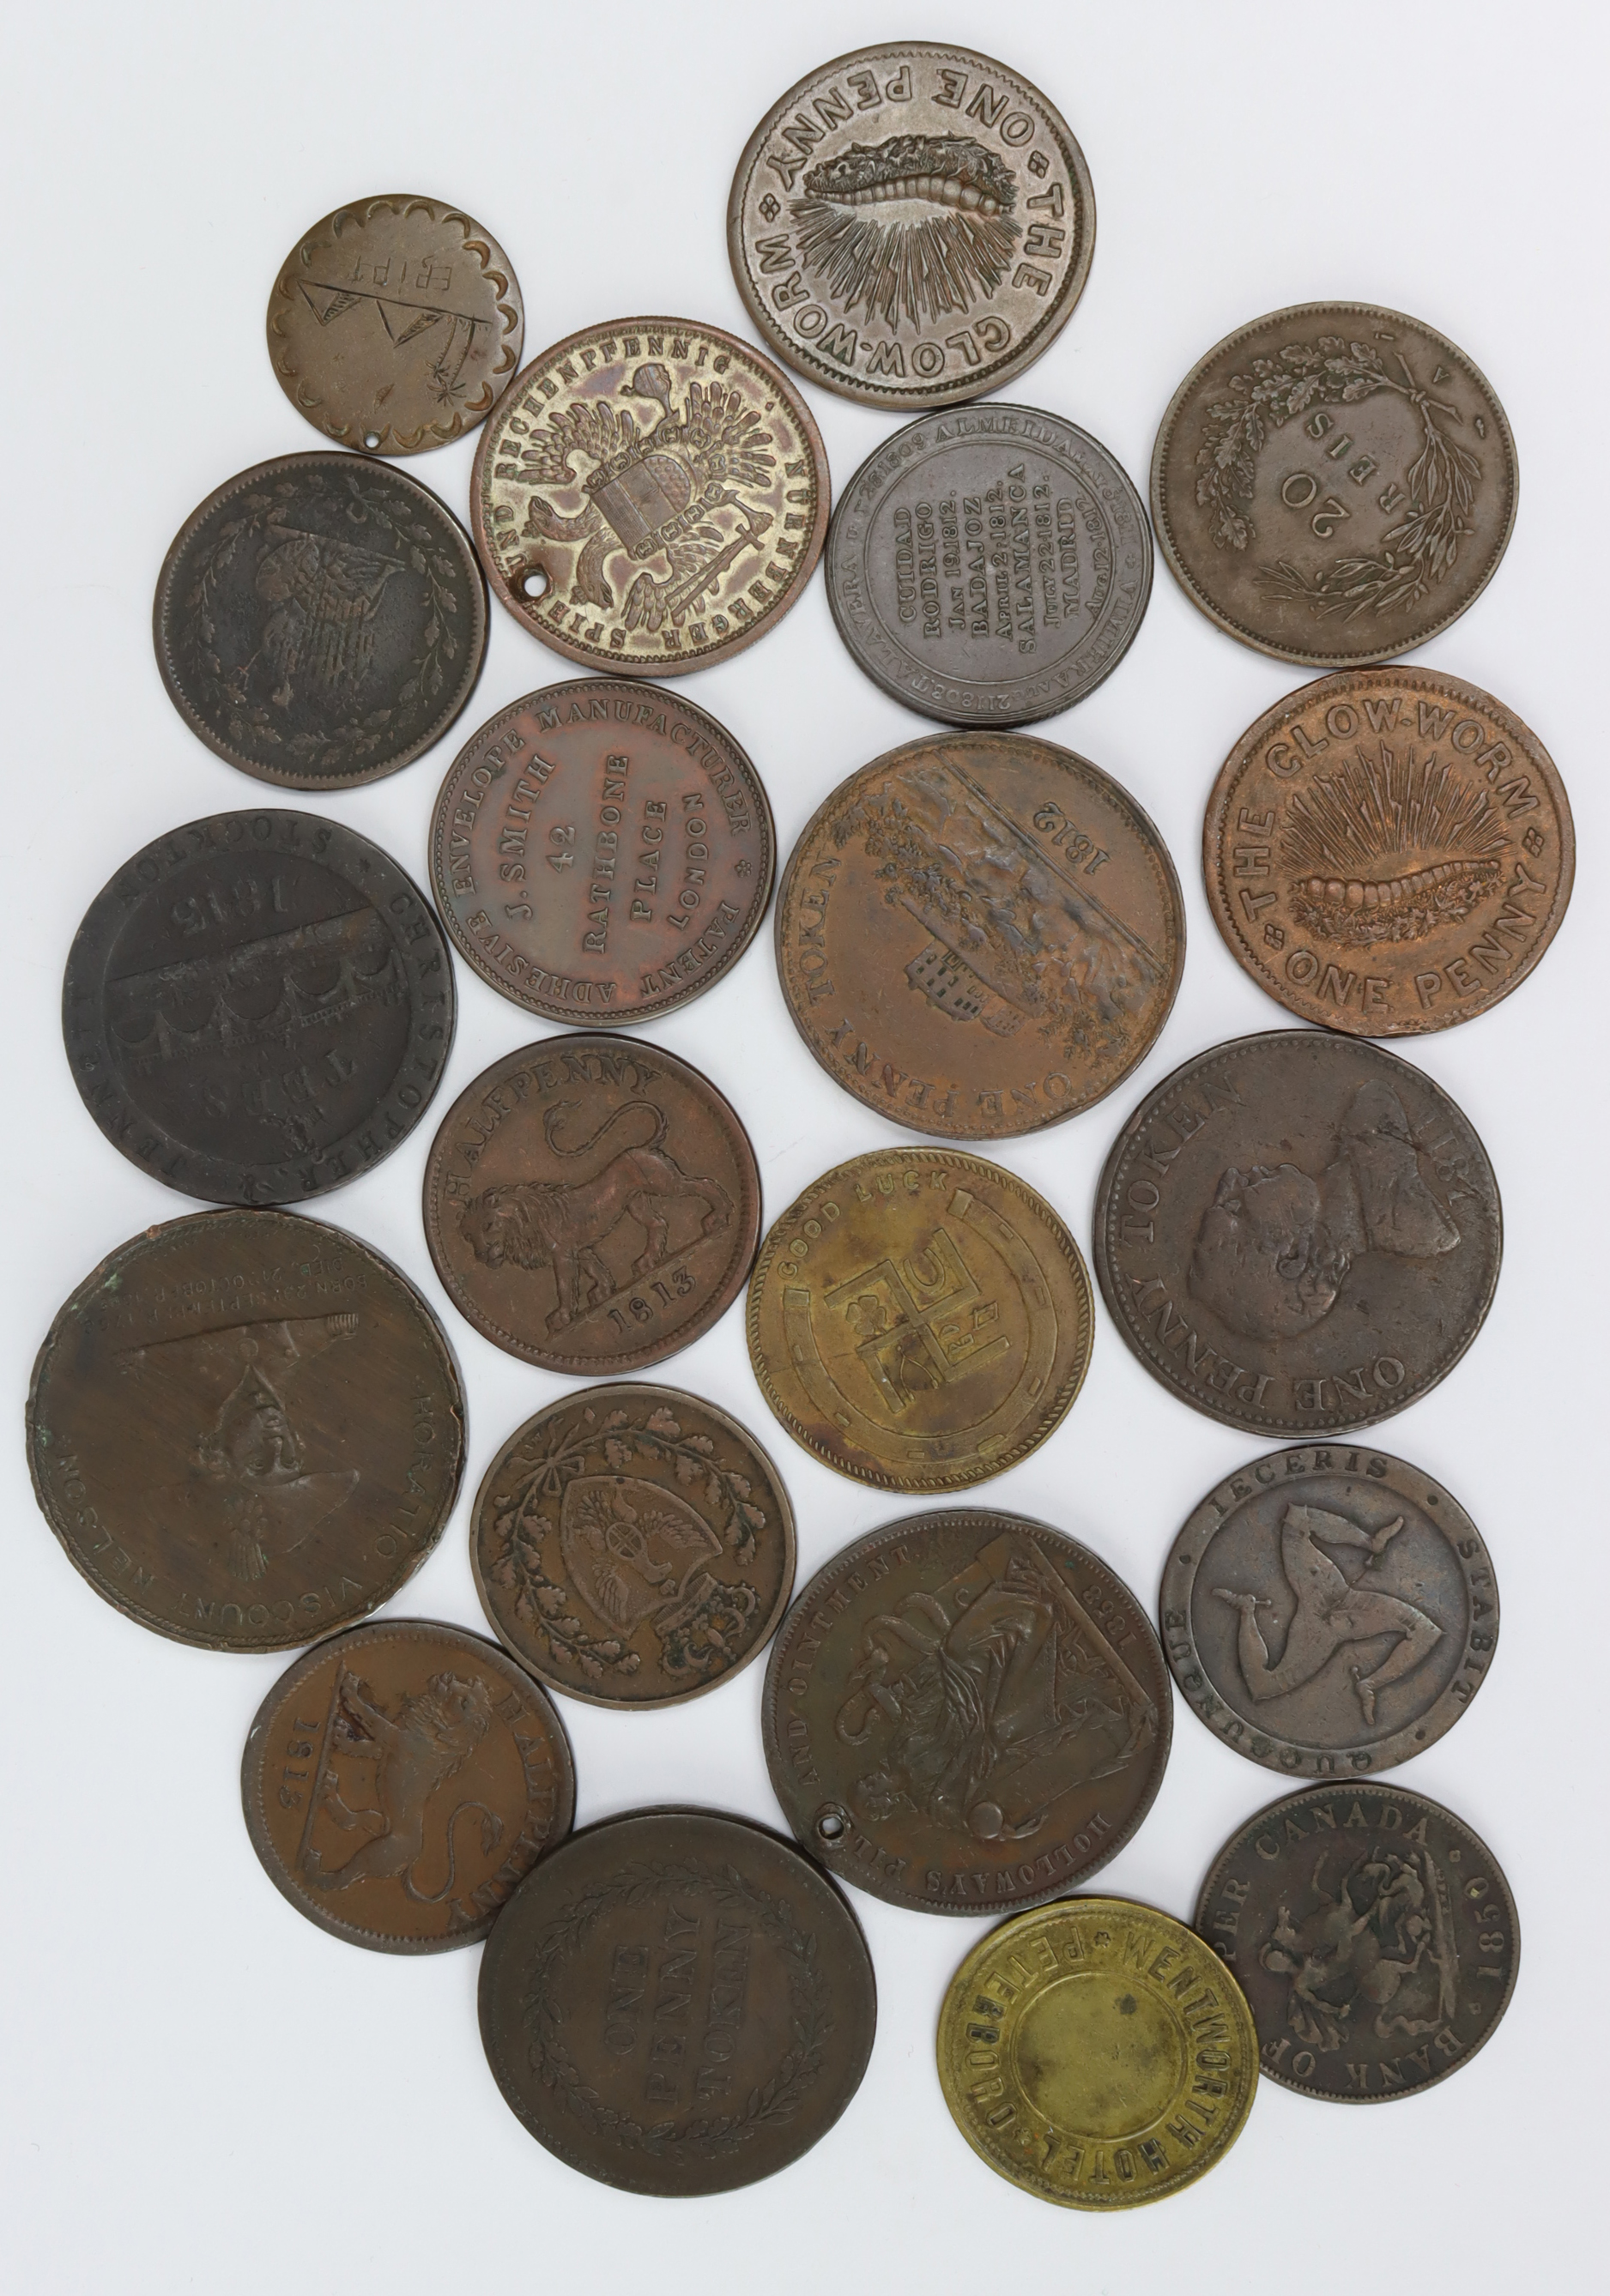 Tokens, Medals & World Copper Coins, 19thC (21) noted Nottingham J.M. Fellows Penny 1812 VF, 'Patent